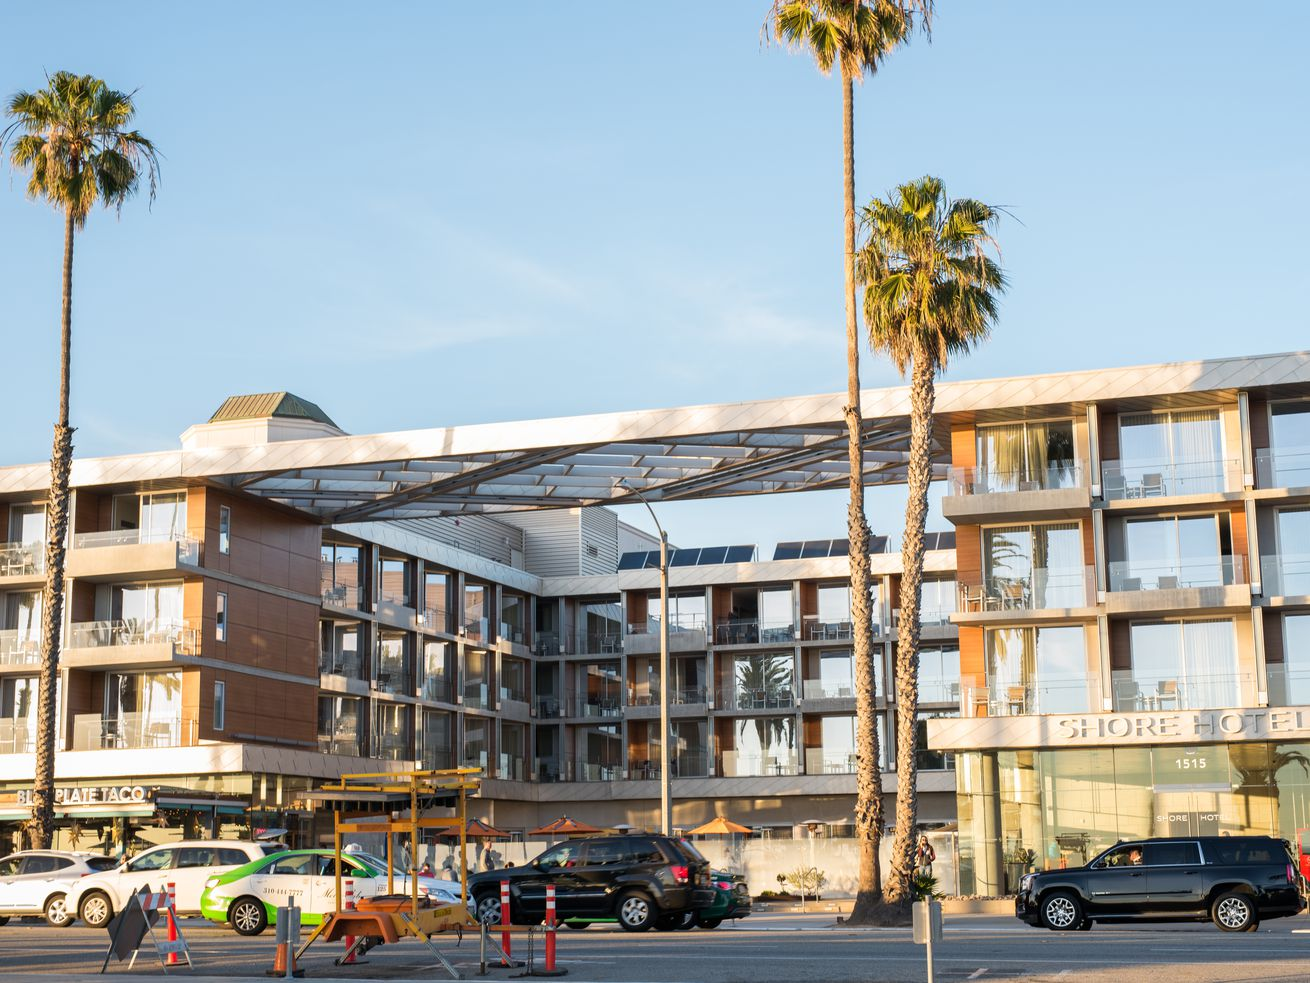 At Shore Hotel on Ocean Boulevard, rooms start around $300 a night and can go up to $800.